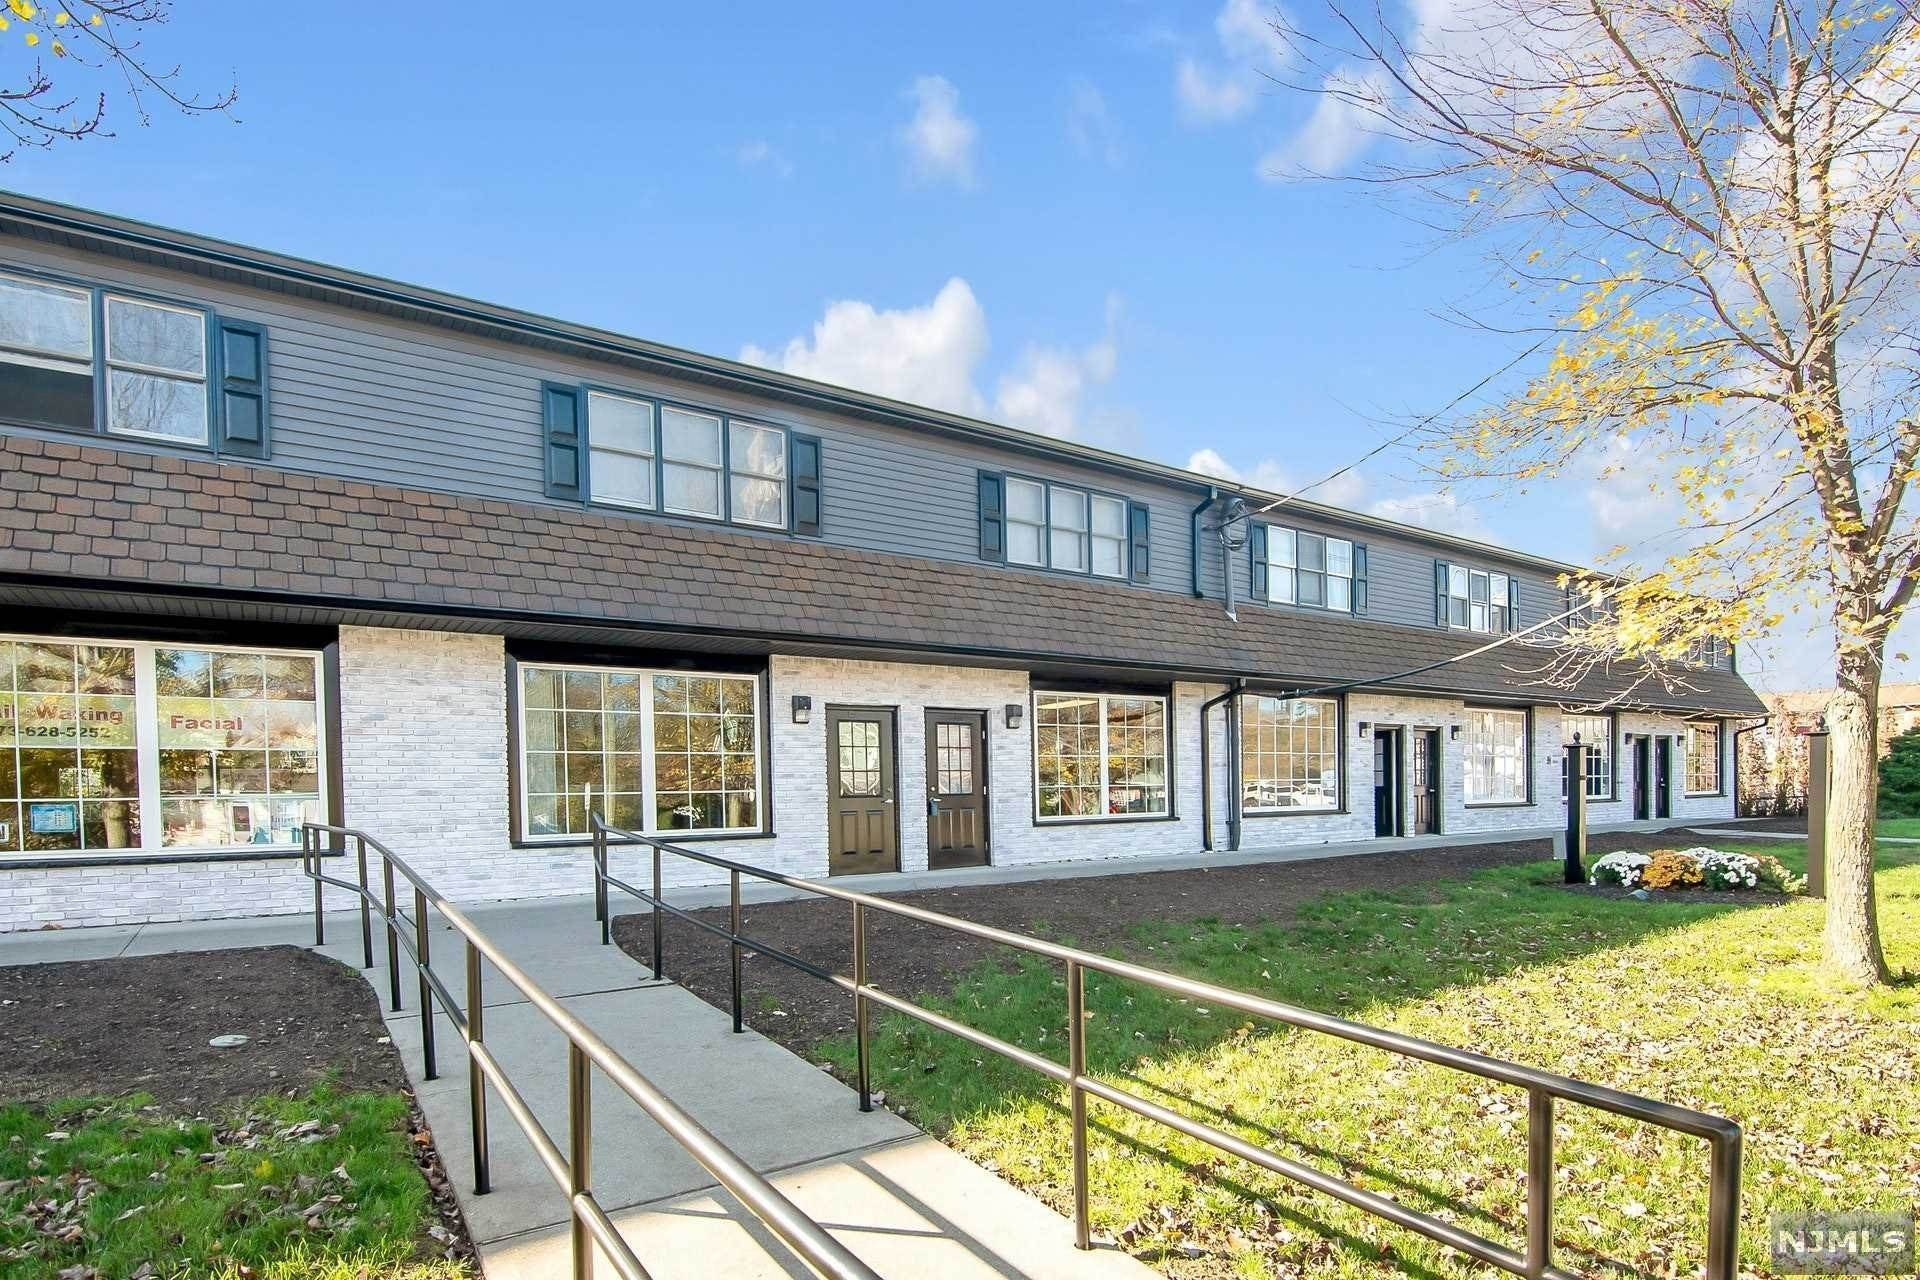 Rental Communities for Rent at 53-67 Newark Pompton Turnpike #67-D Pequannock Township, New Jersey, 07440 United States